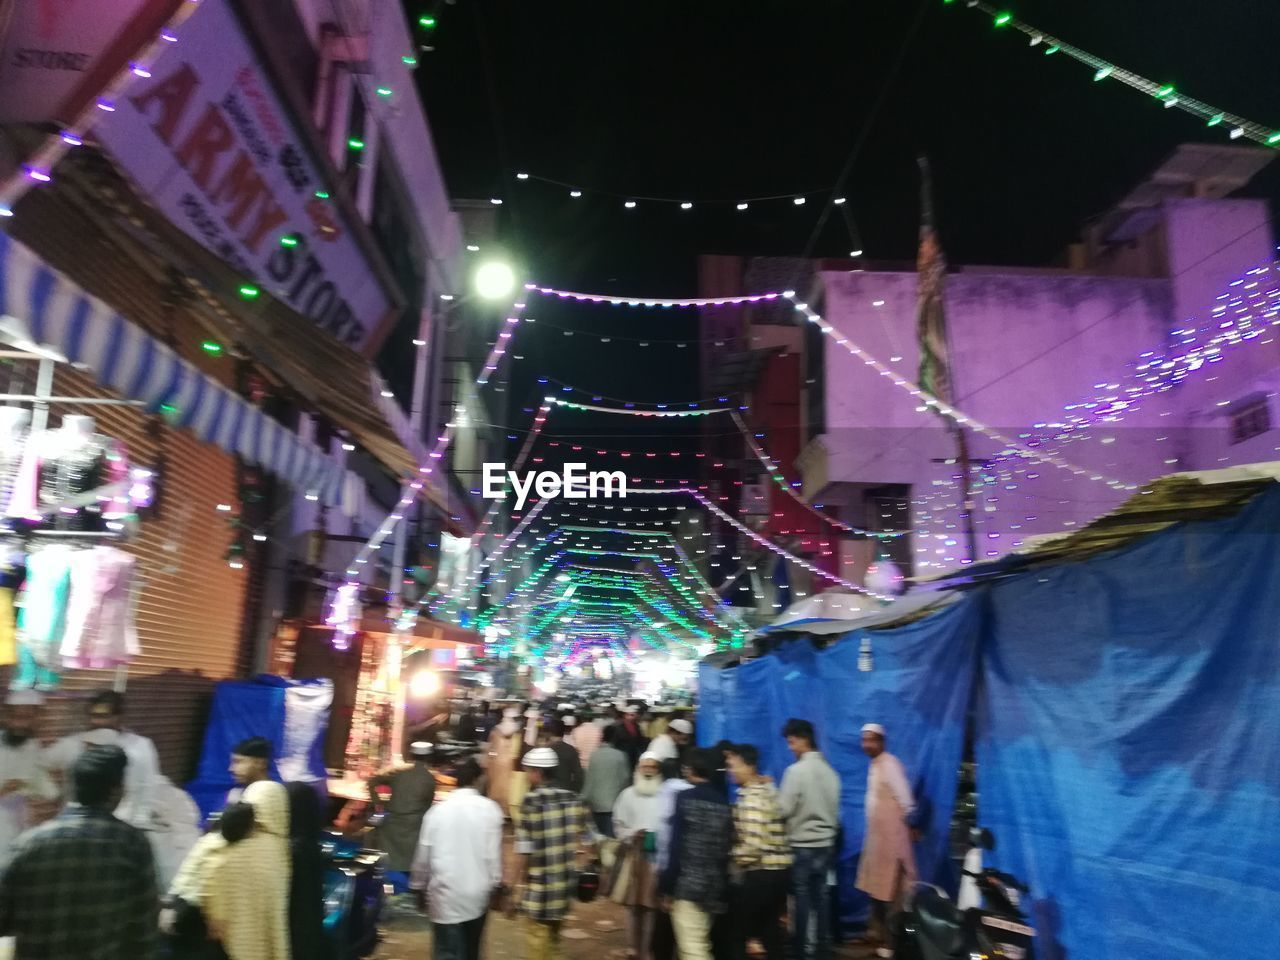 night, illuminated, real people, group of people, crowd, large group of people, decoration, architecture, women, city, adult, men, built structure, celebration, building exterior, lighting equipment, lifestyles, low angle view, light, nightlife, festival, stage